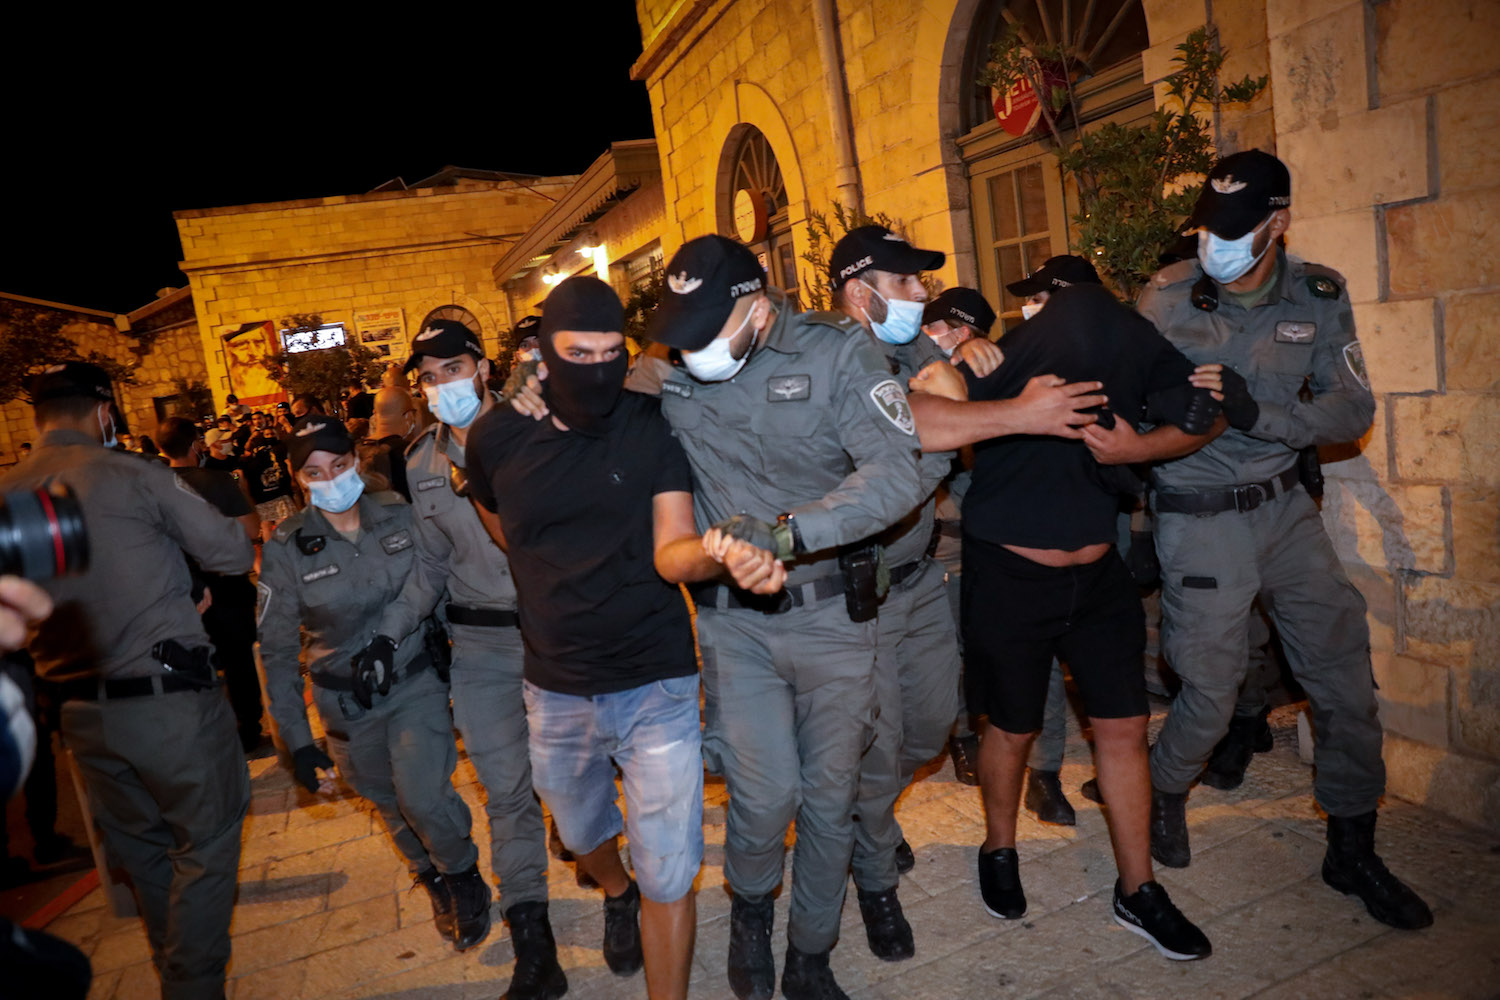 """Right-wing demonstrators from """"La Familia"""" clash with police as they hold a counter protest against the anti-Netanyahu demonstrators, Jerusalem, July 30, 2020. (Olivier Fitoussi/Flash90)"""